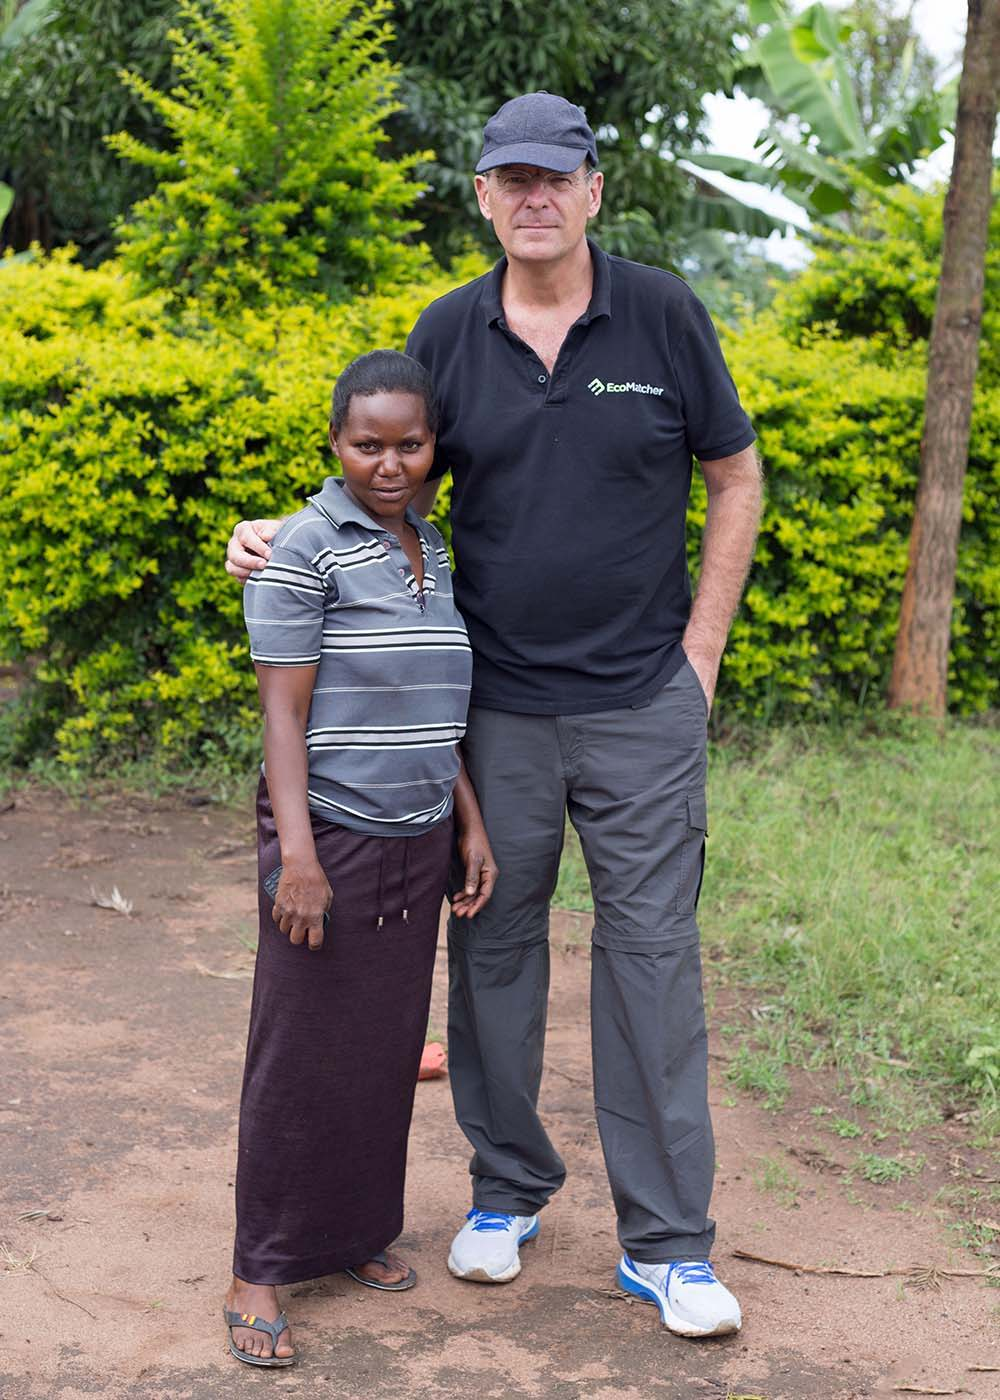 Picture of Bas Fransen, founder of Eco Matcher, with Nassange, one of the trees planter